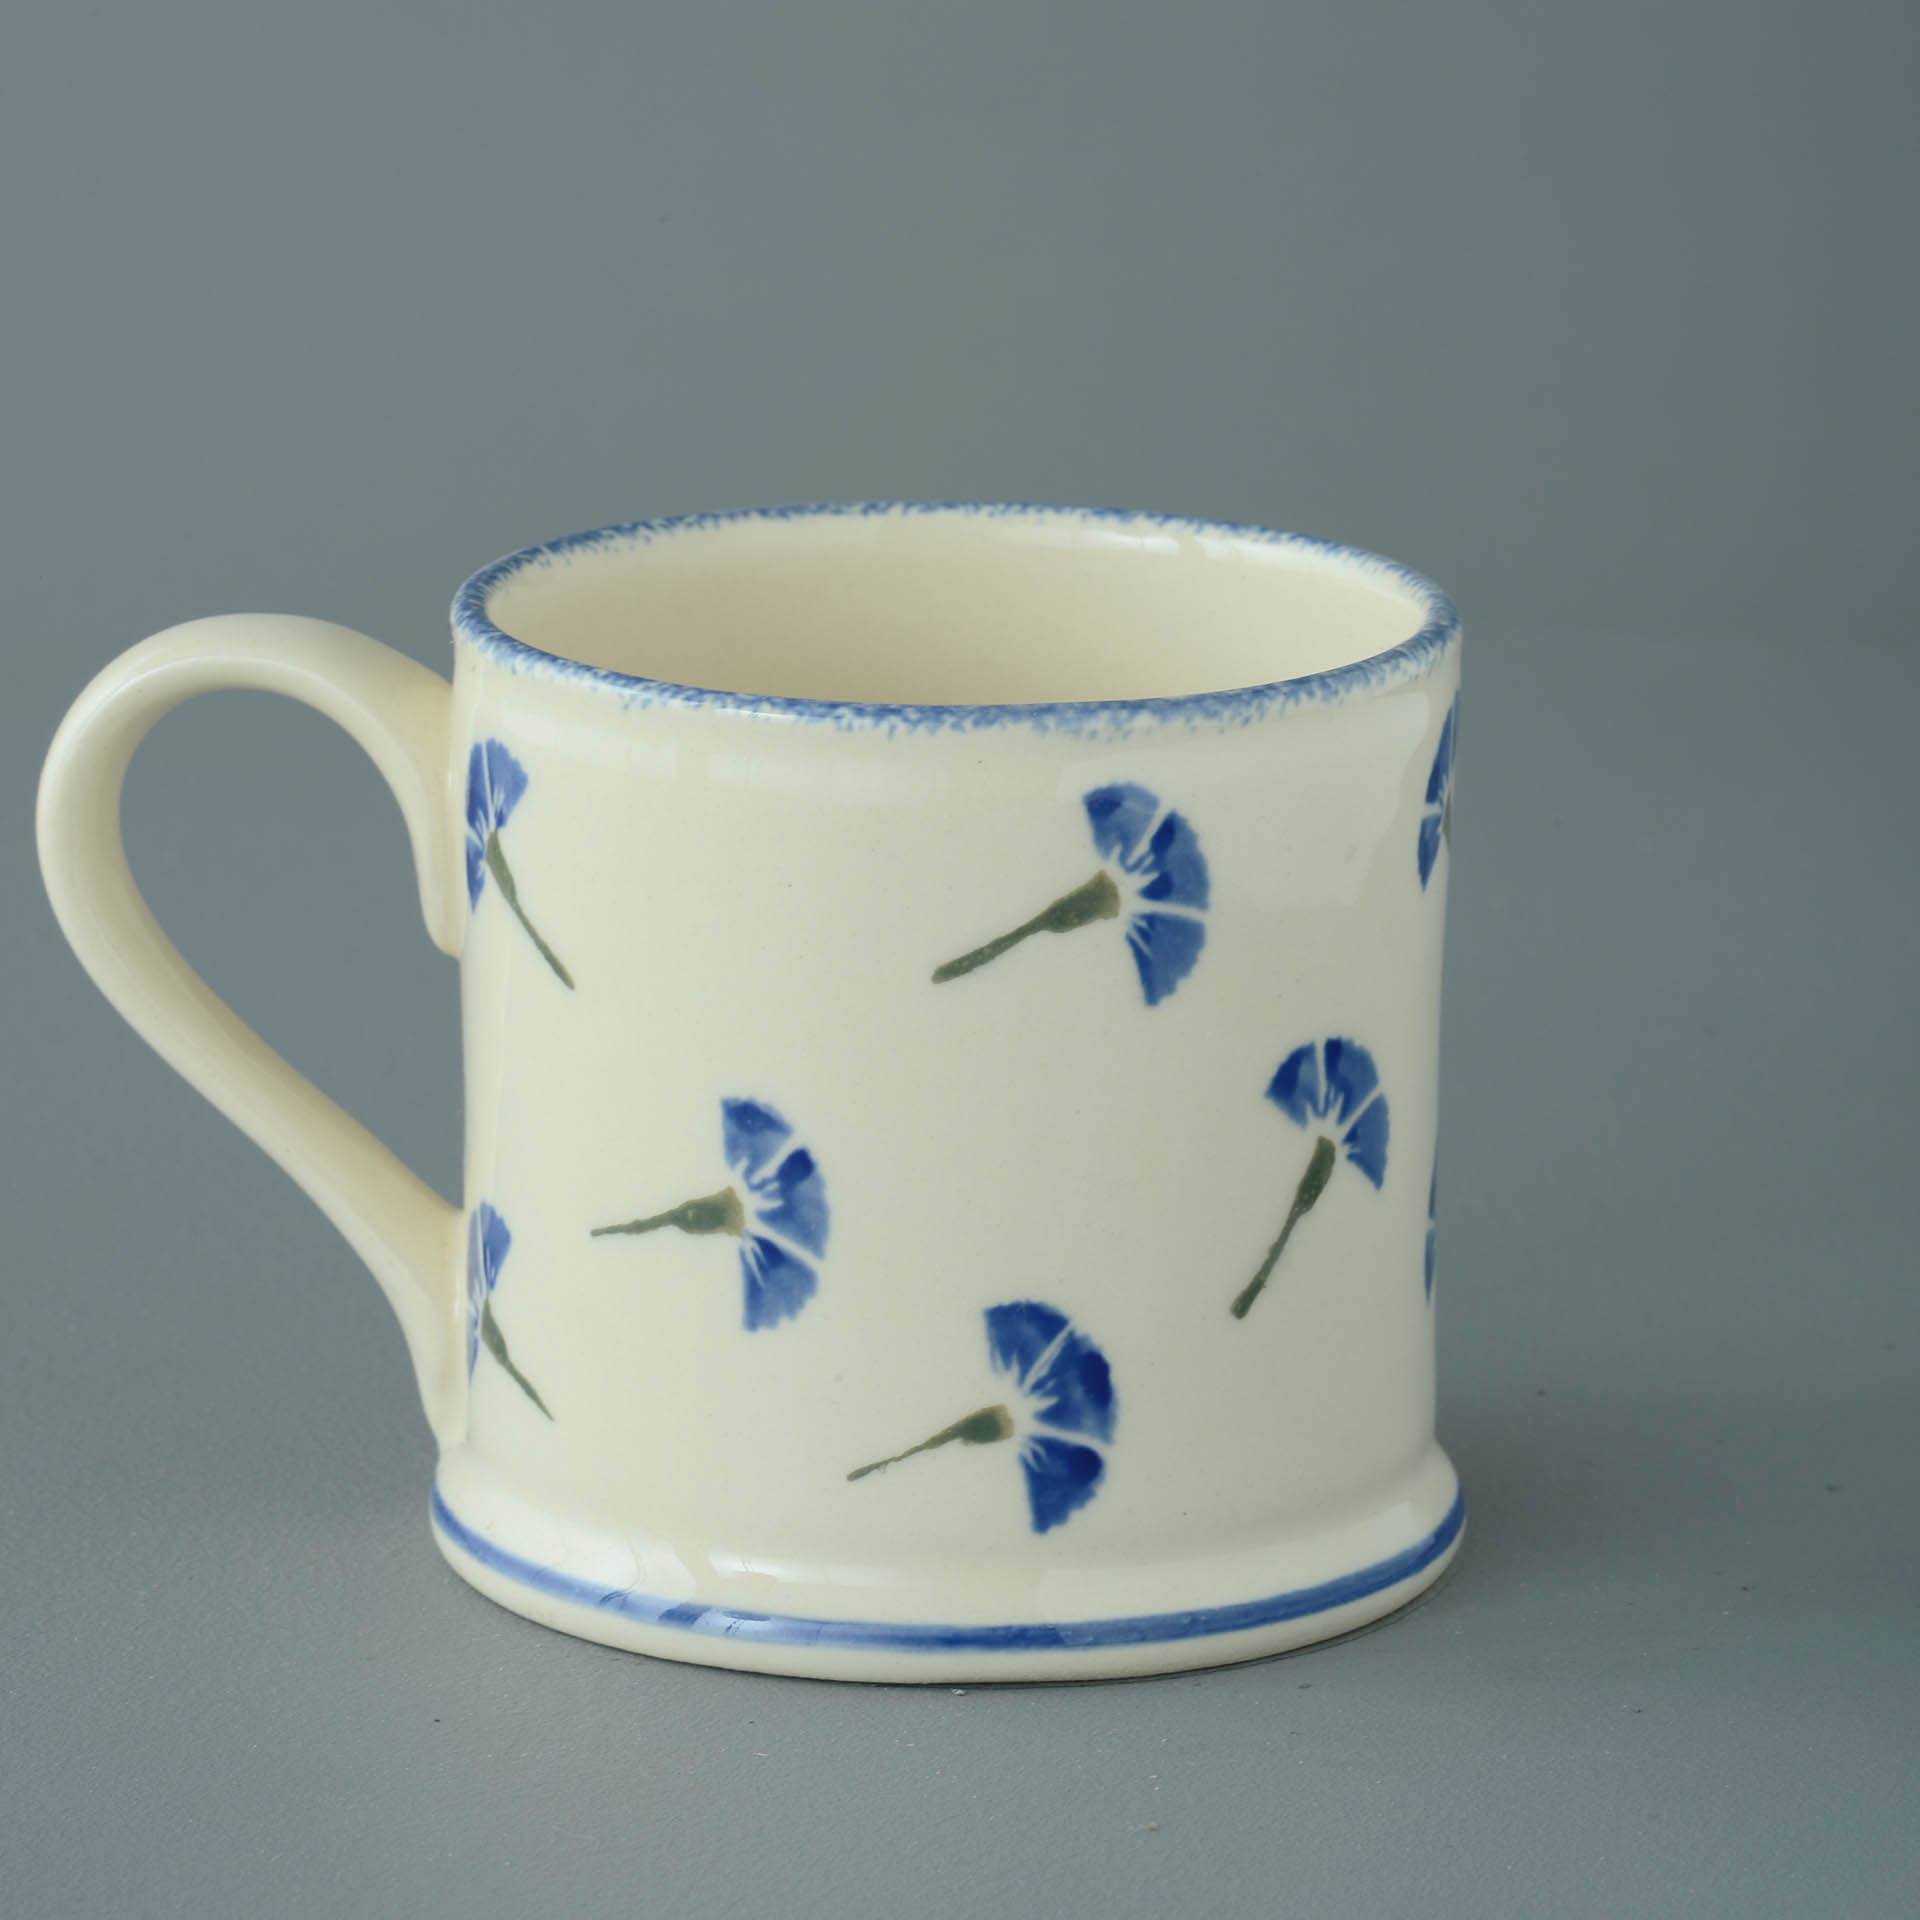 Cornflower 250ml Large Mug 8 x 8.4cm